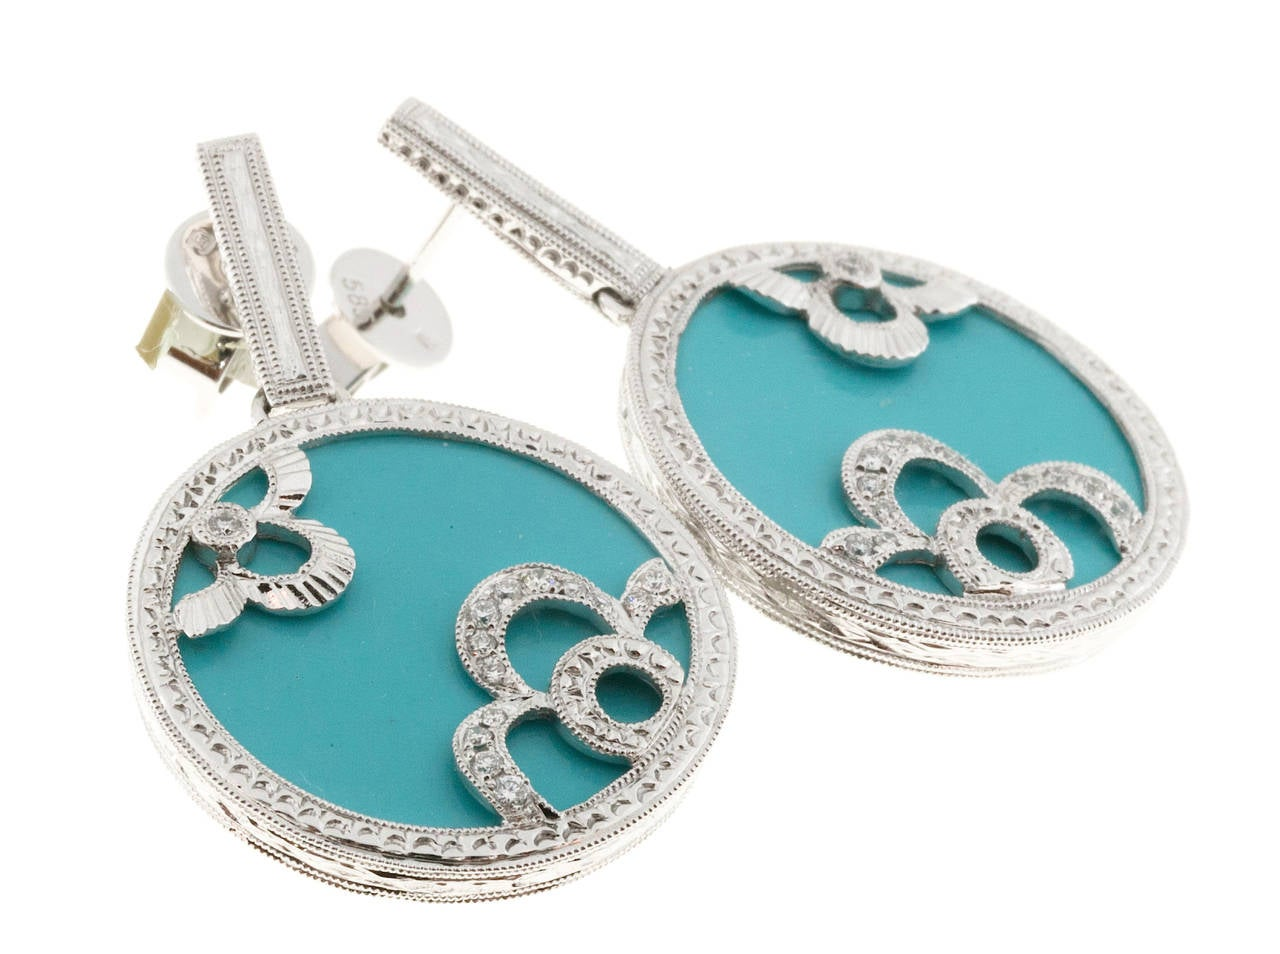 Hand detailed and engraved bead set dangle earrings with good diamond accents and fine Robins egg Turquoise centers.